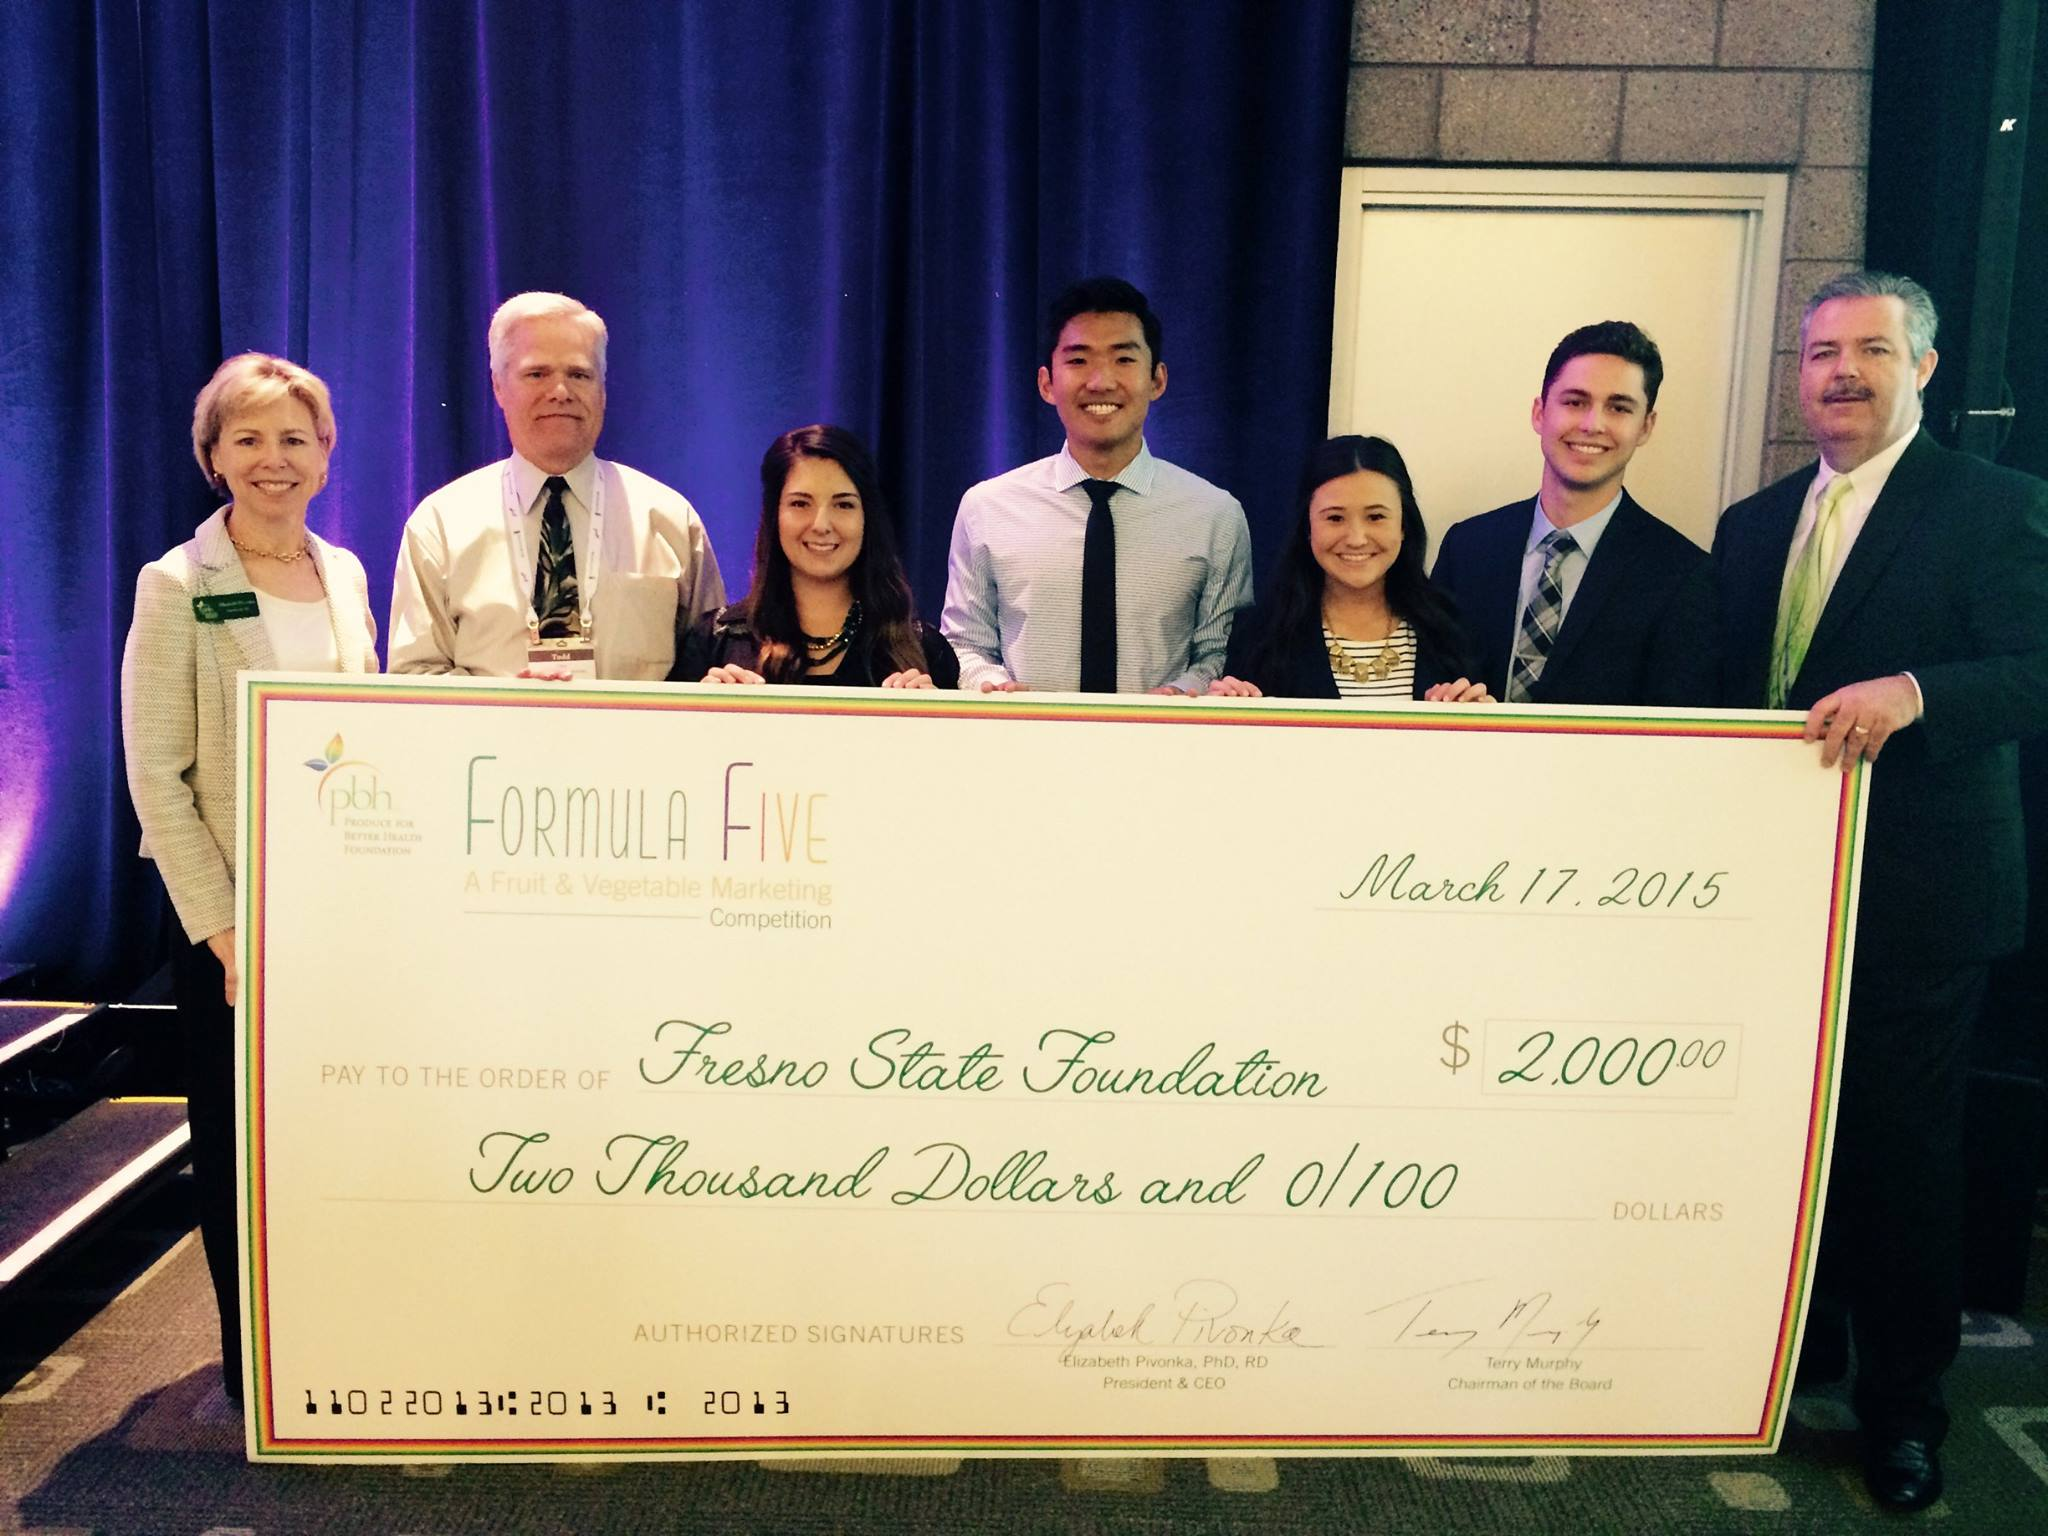 The Ag Business Club receives an award at the 2015 annual conference in Phoenix.